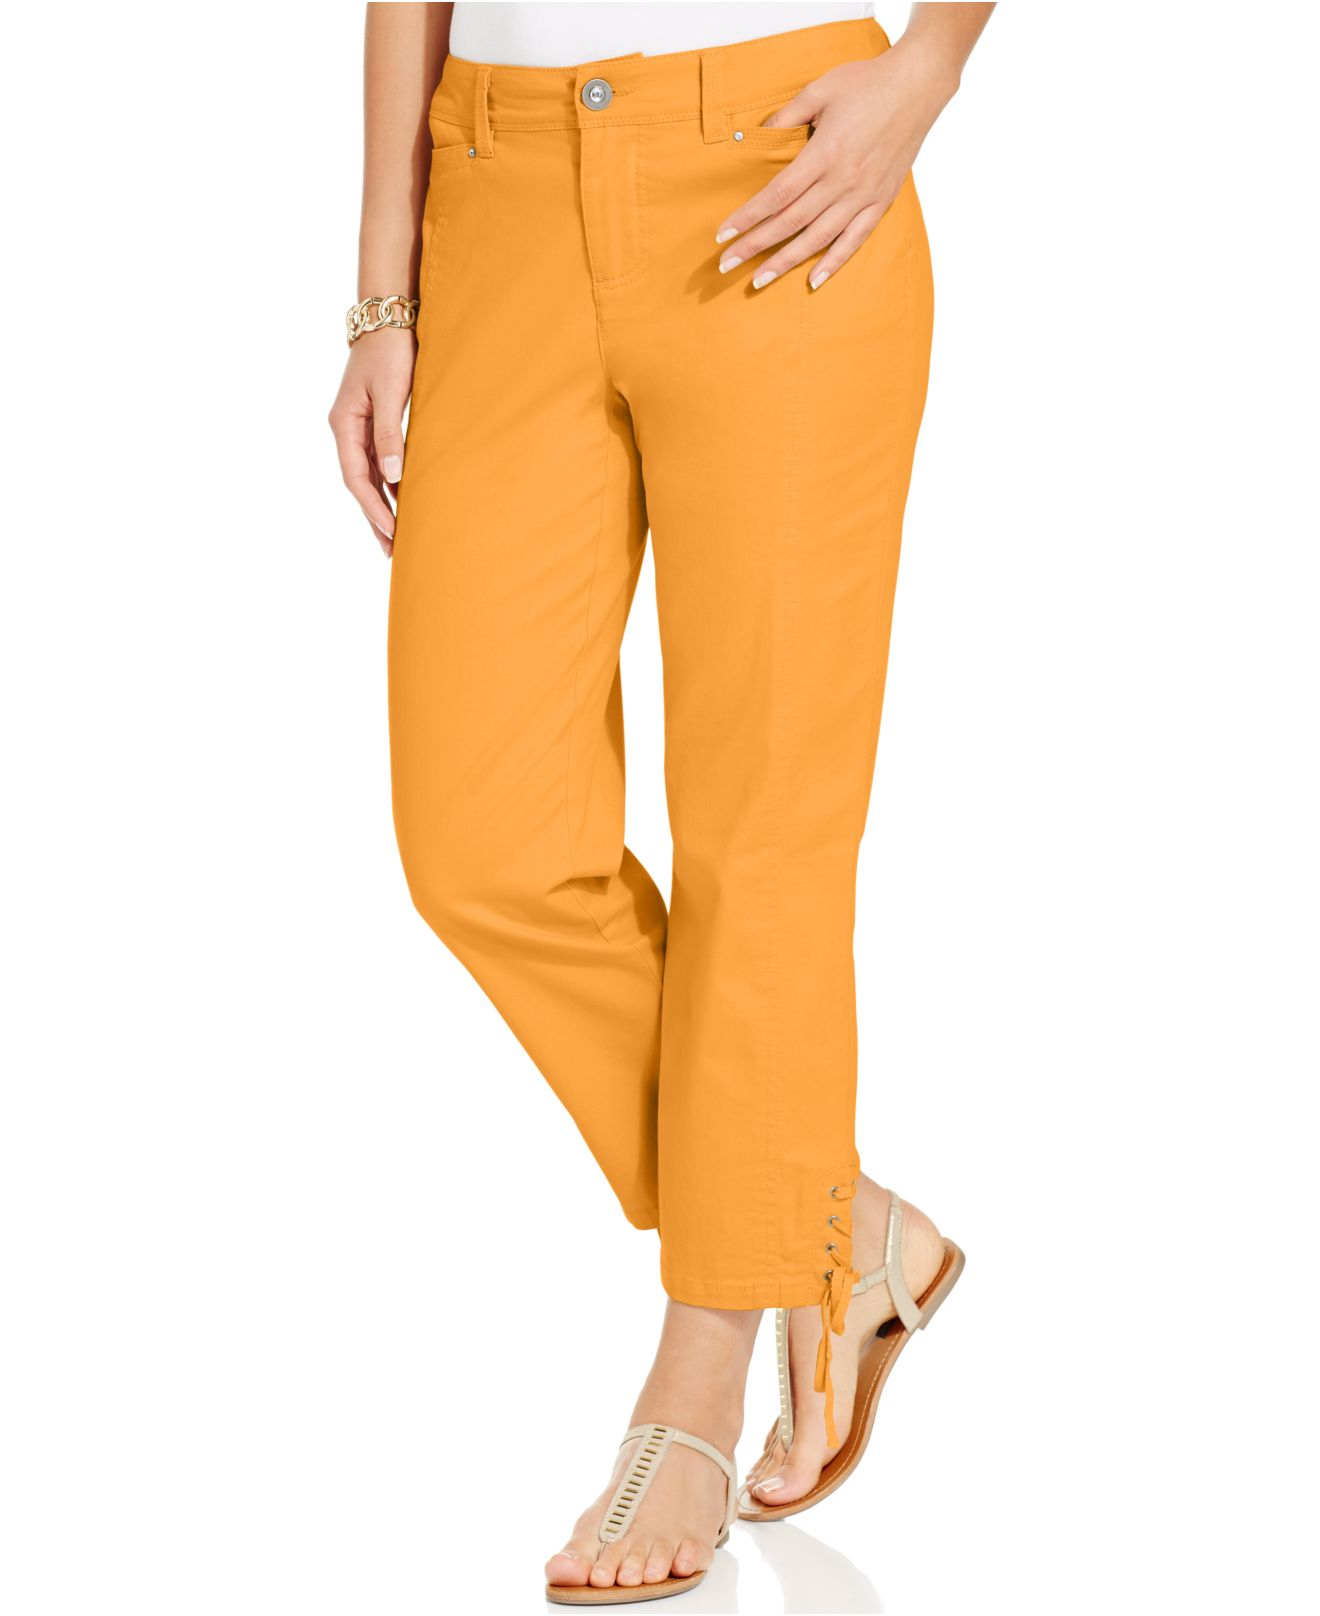 ea5d9c36e59 Lyst - Style   Co. Lace-up Capri Pants in Orange